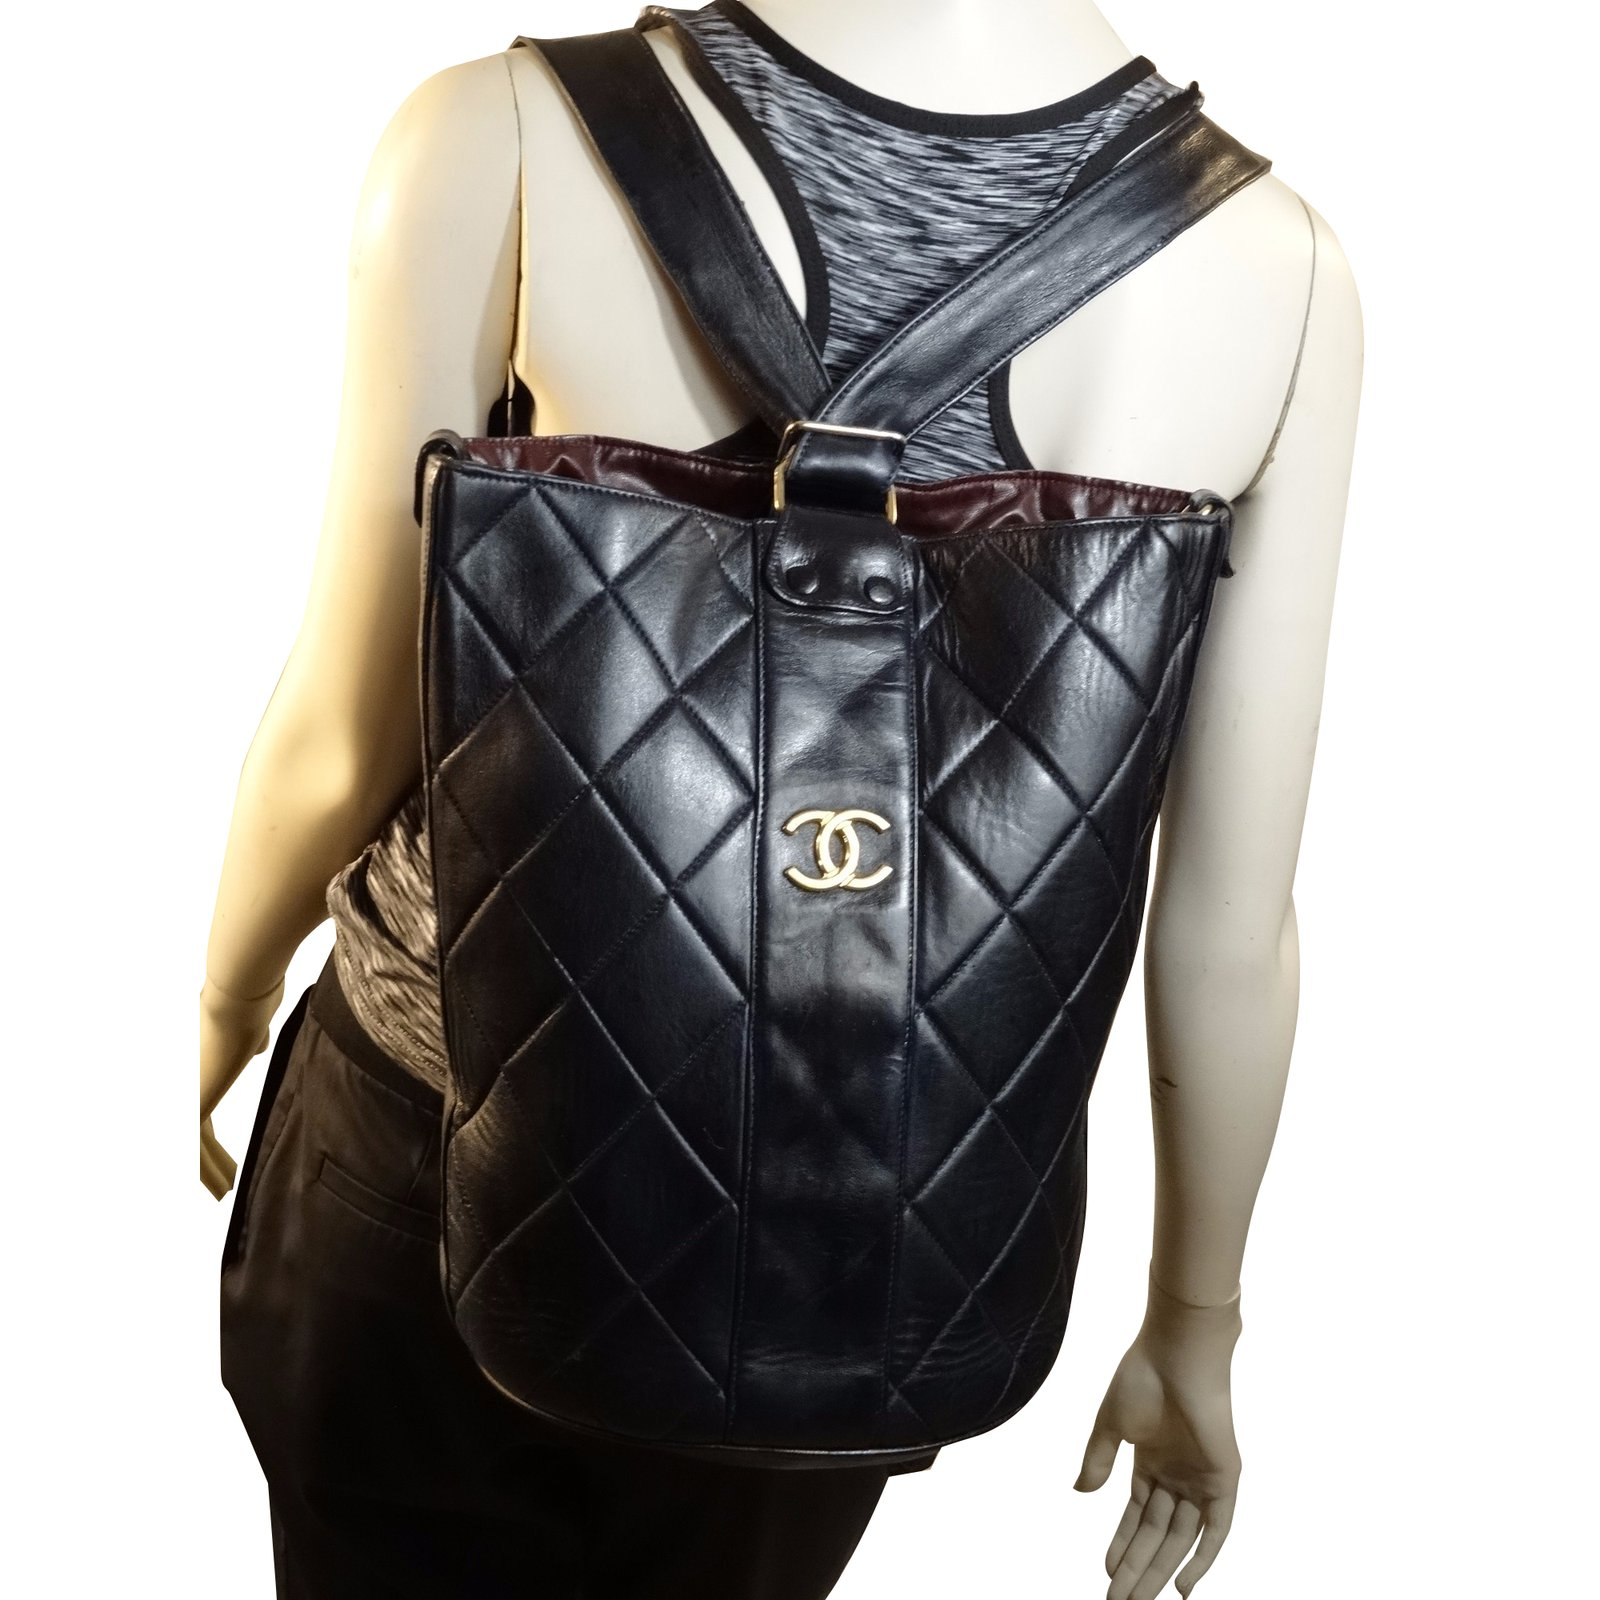 e06fc91aa702 Facebook · Pin This. Chanel Backpack Backpacks Leather Black ref.39512